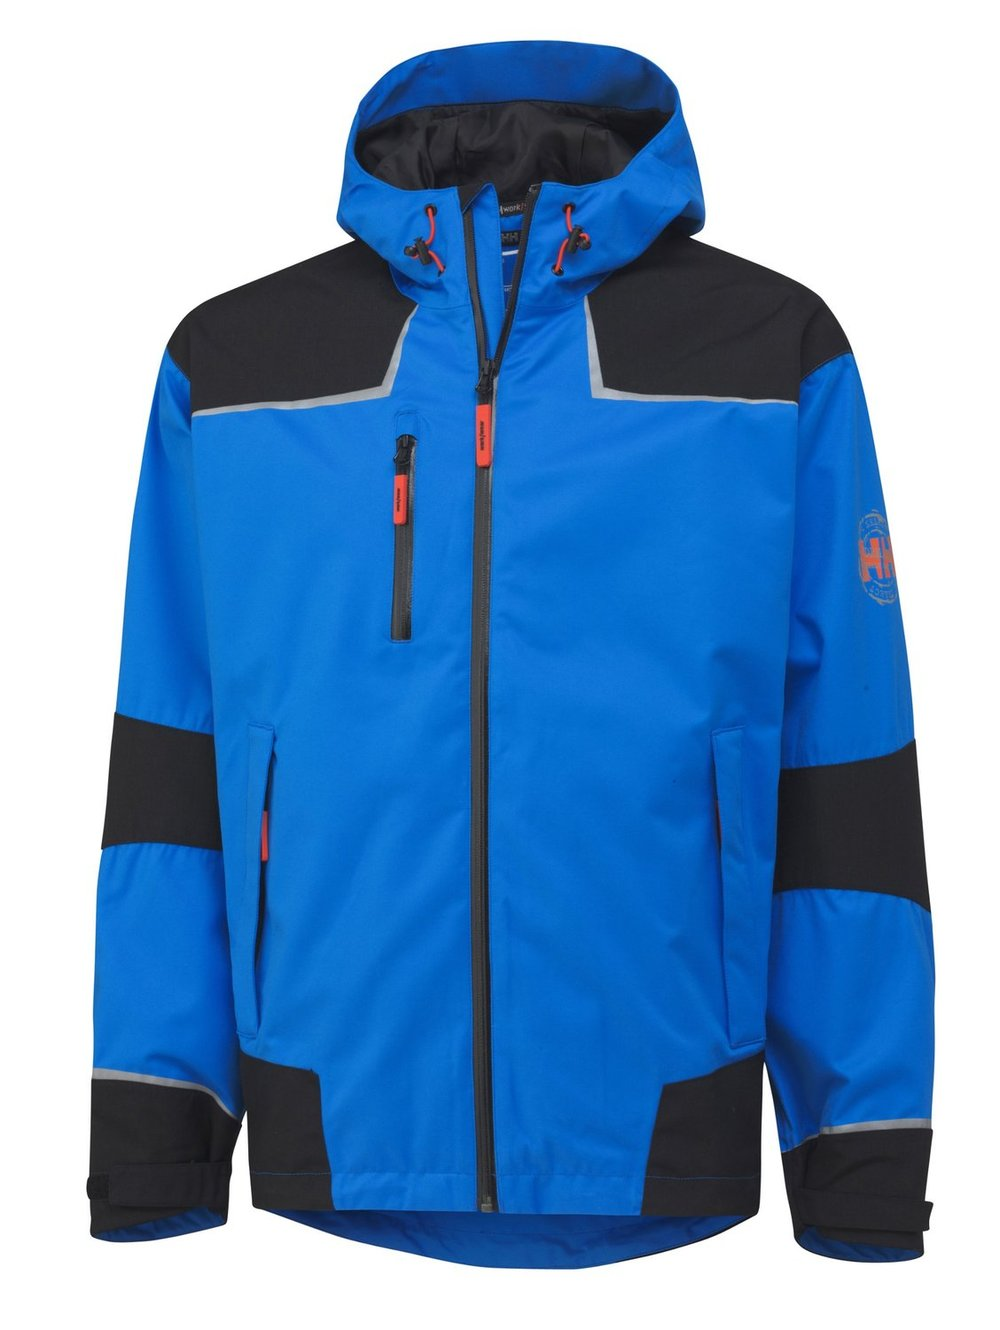 Helly Hansen Chelsea Shell Jacket in Race Blue